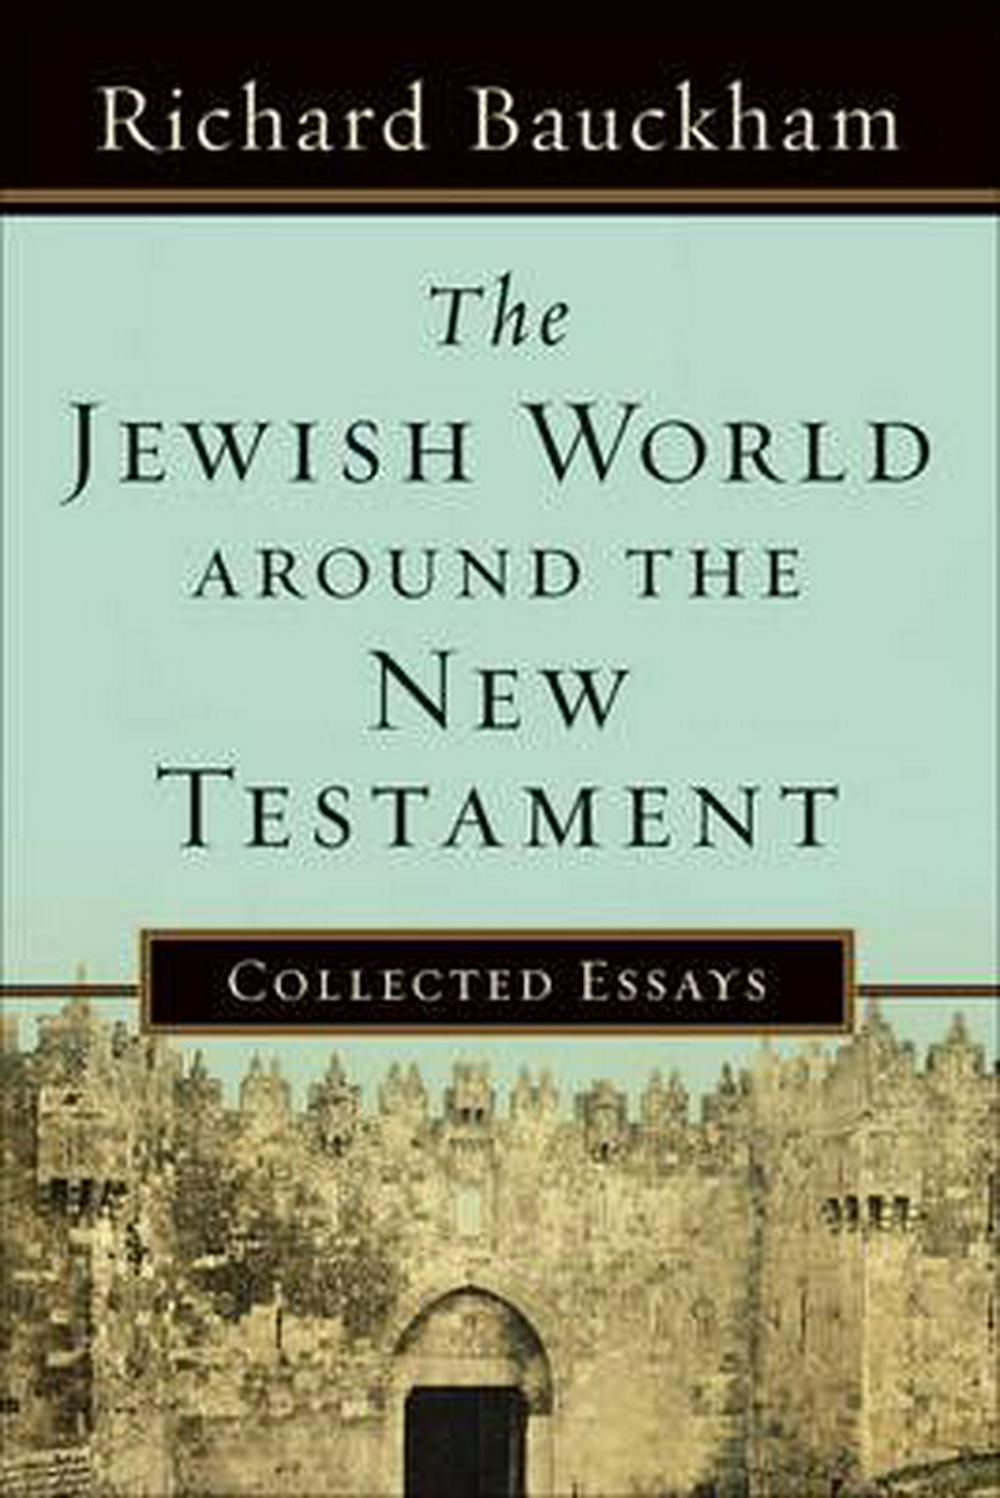 The Jewish World Around the New Testament